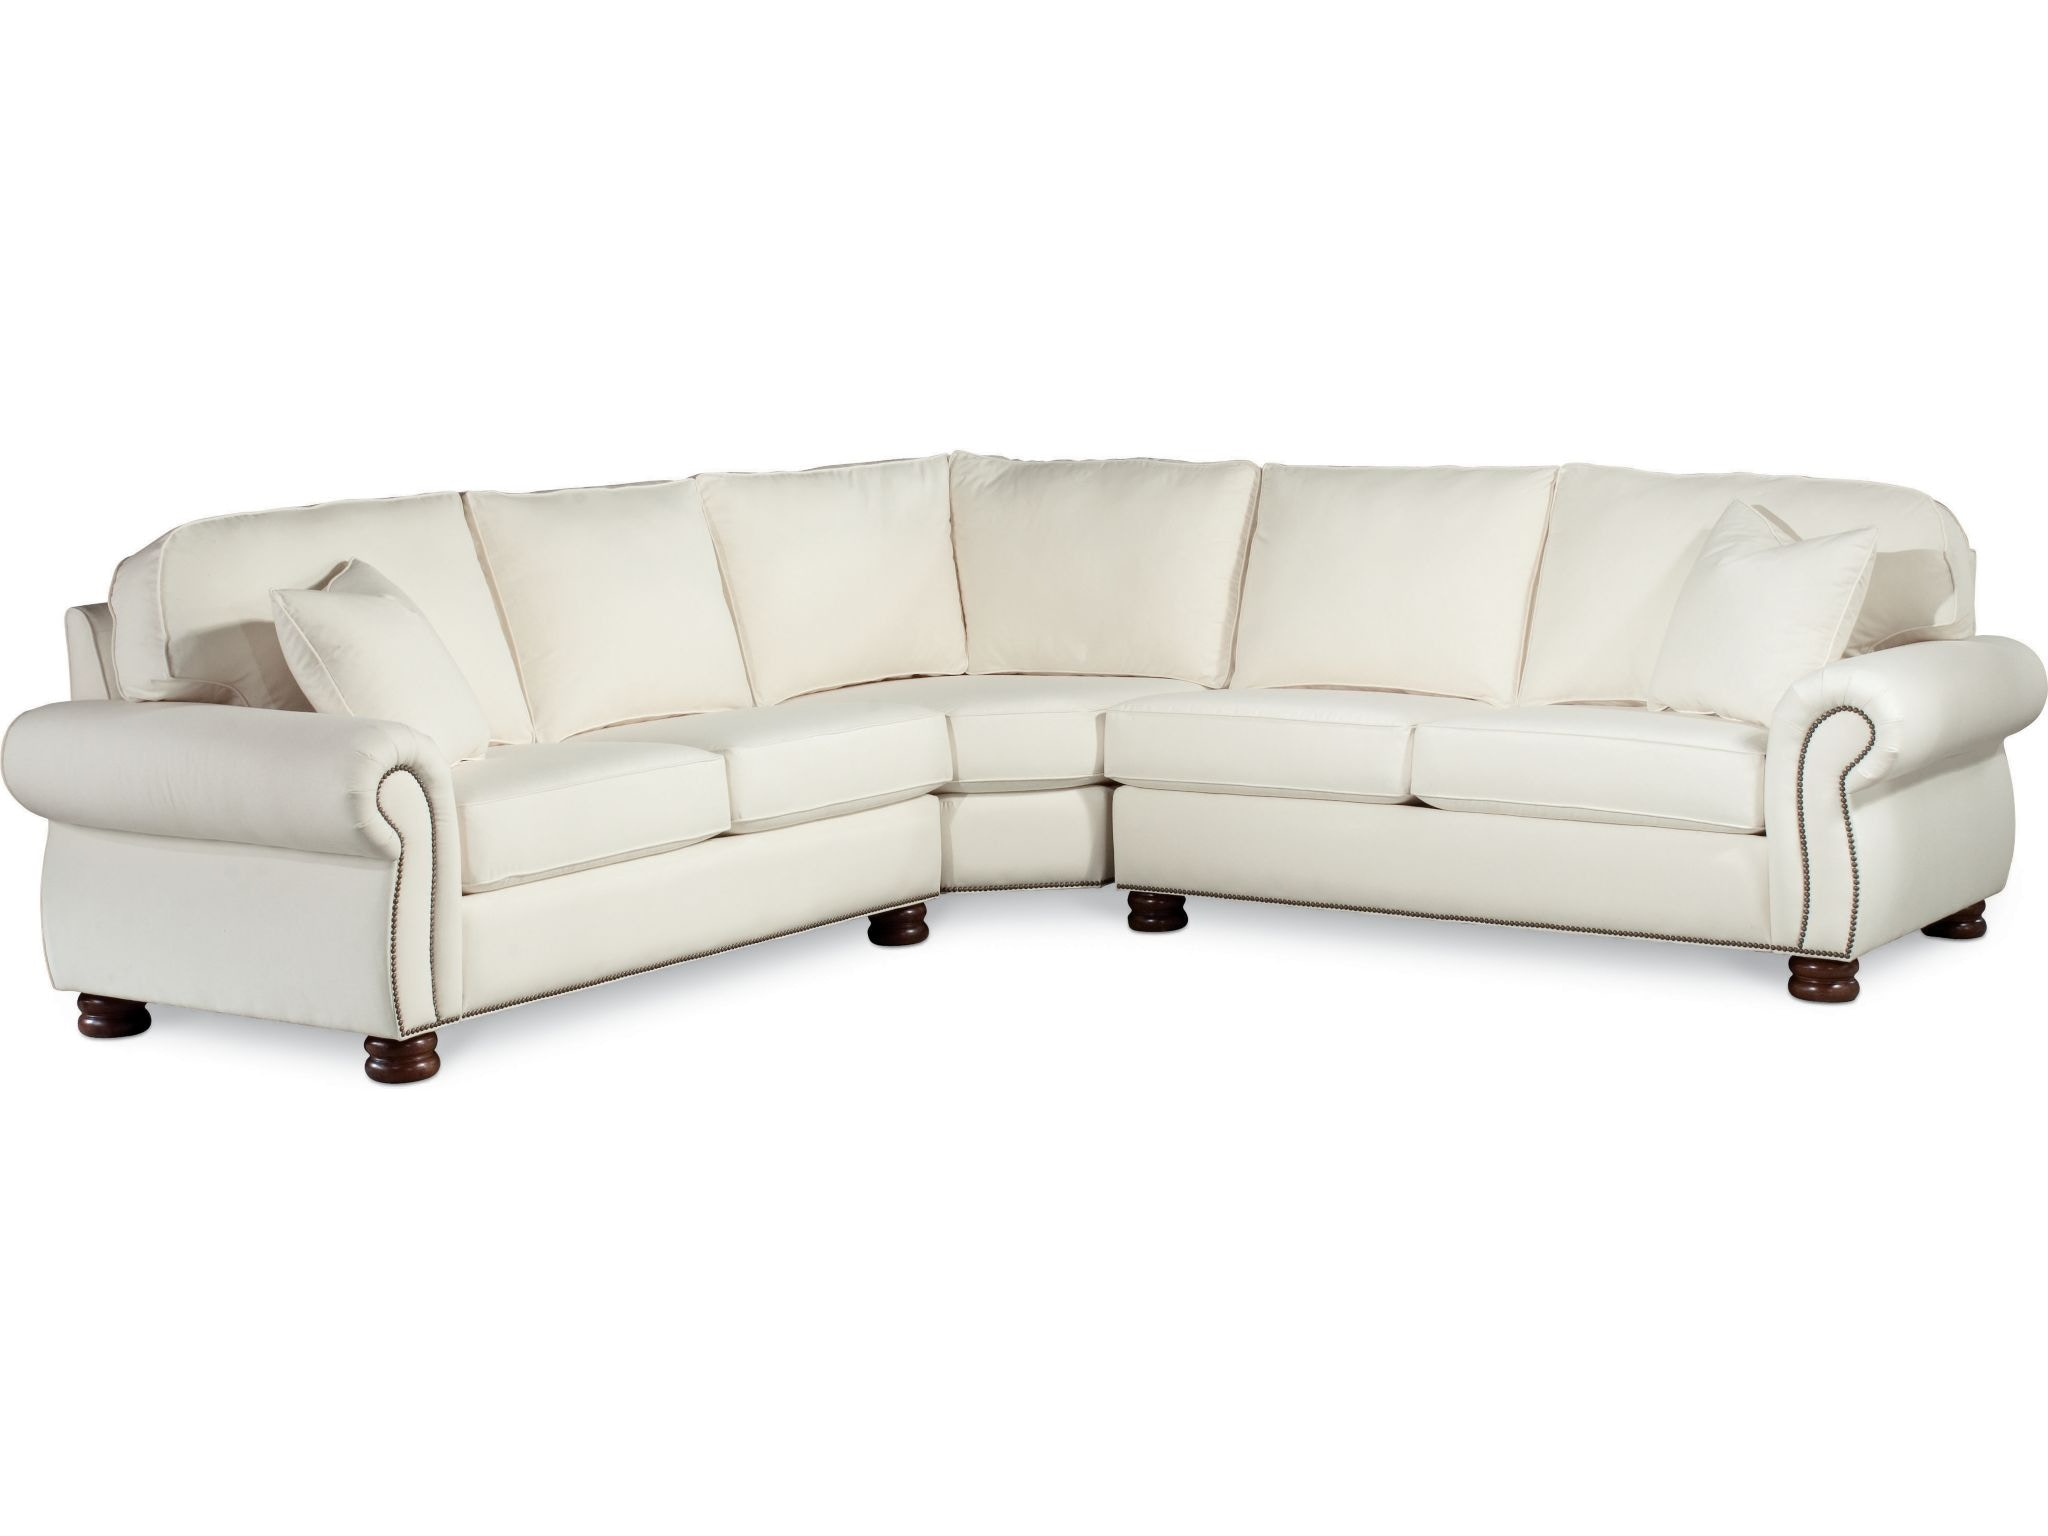 thomasville benjamin leather sofa bed with chaise lounge living room sectional 1461 sect